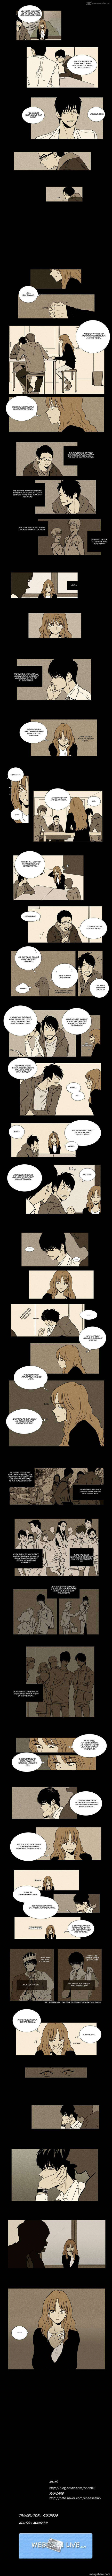 Cheese In The Trap 8 Page 2